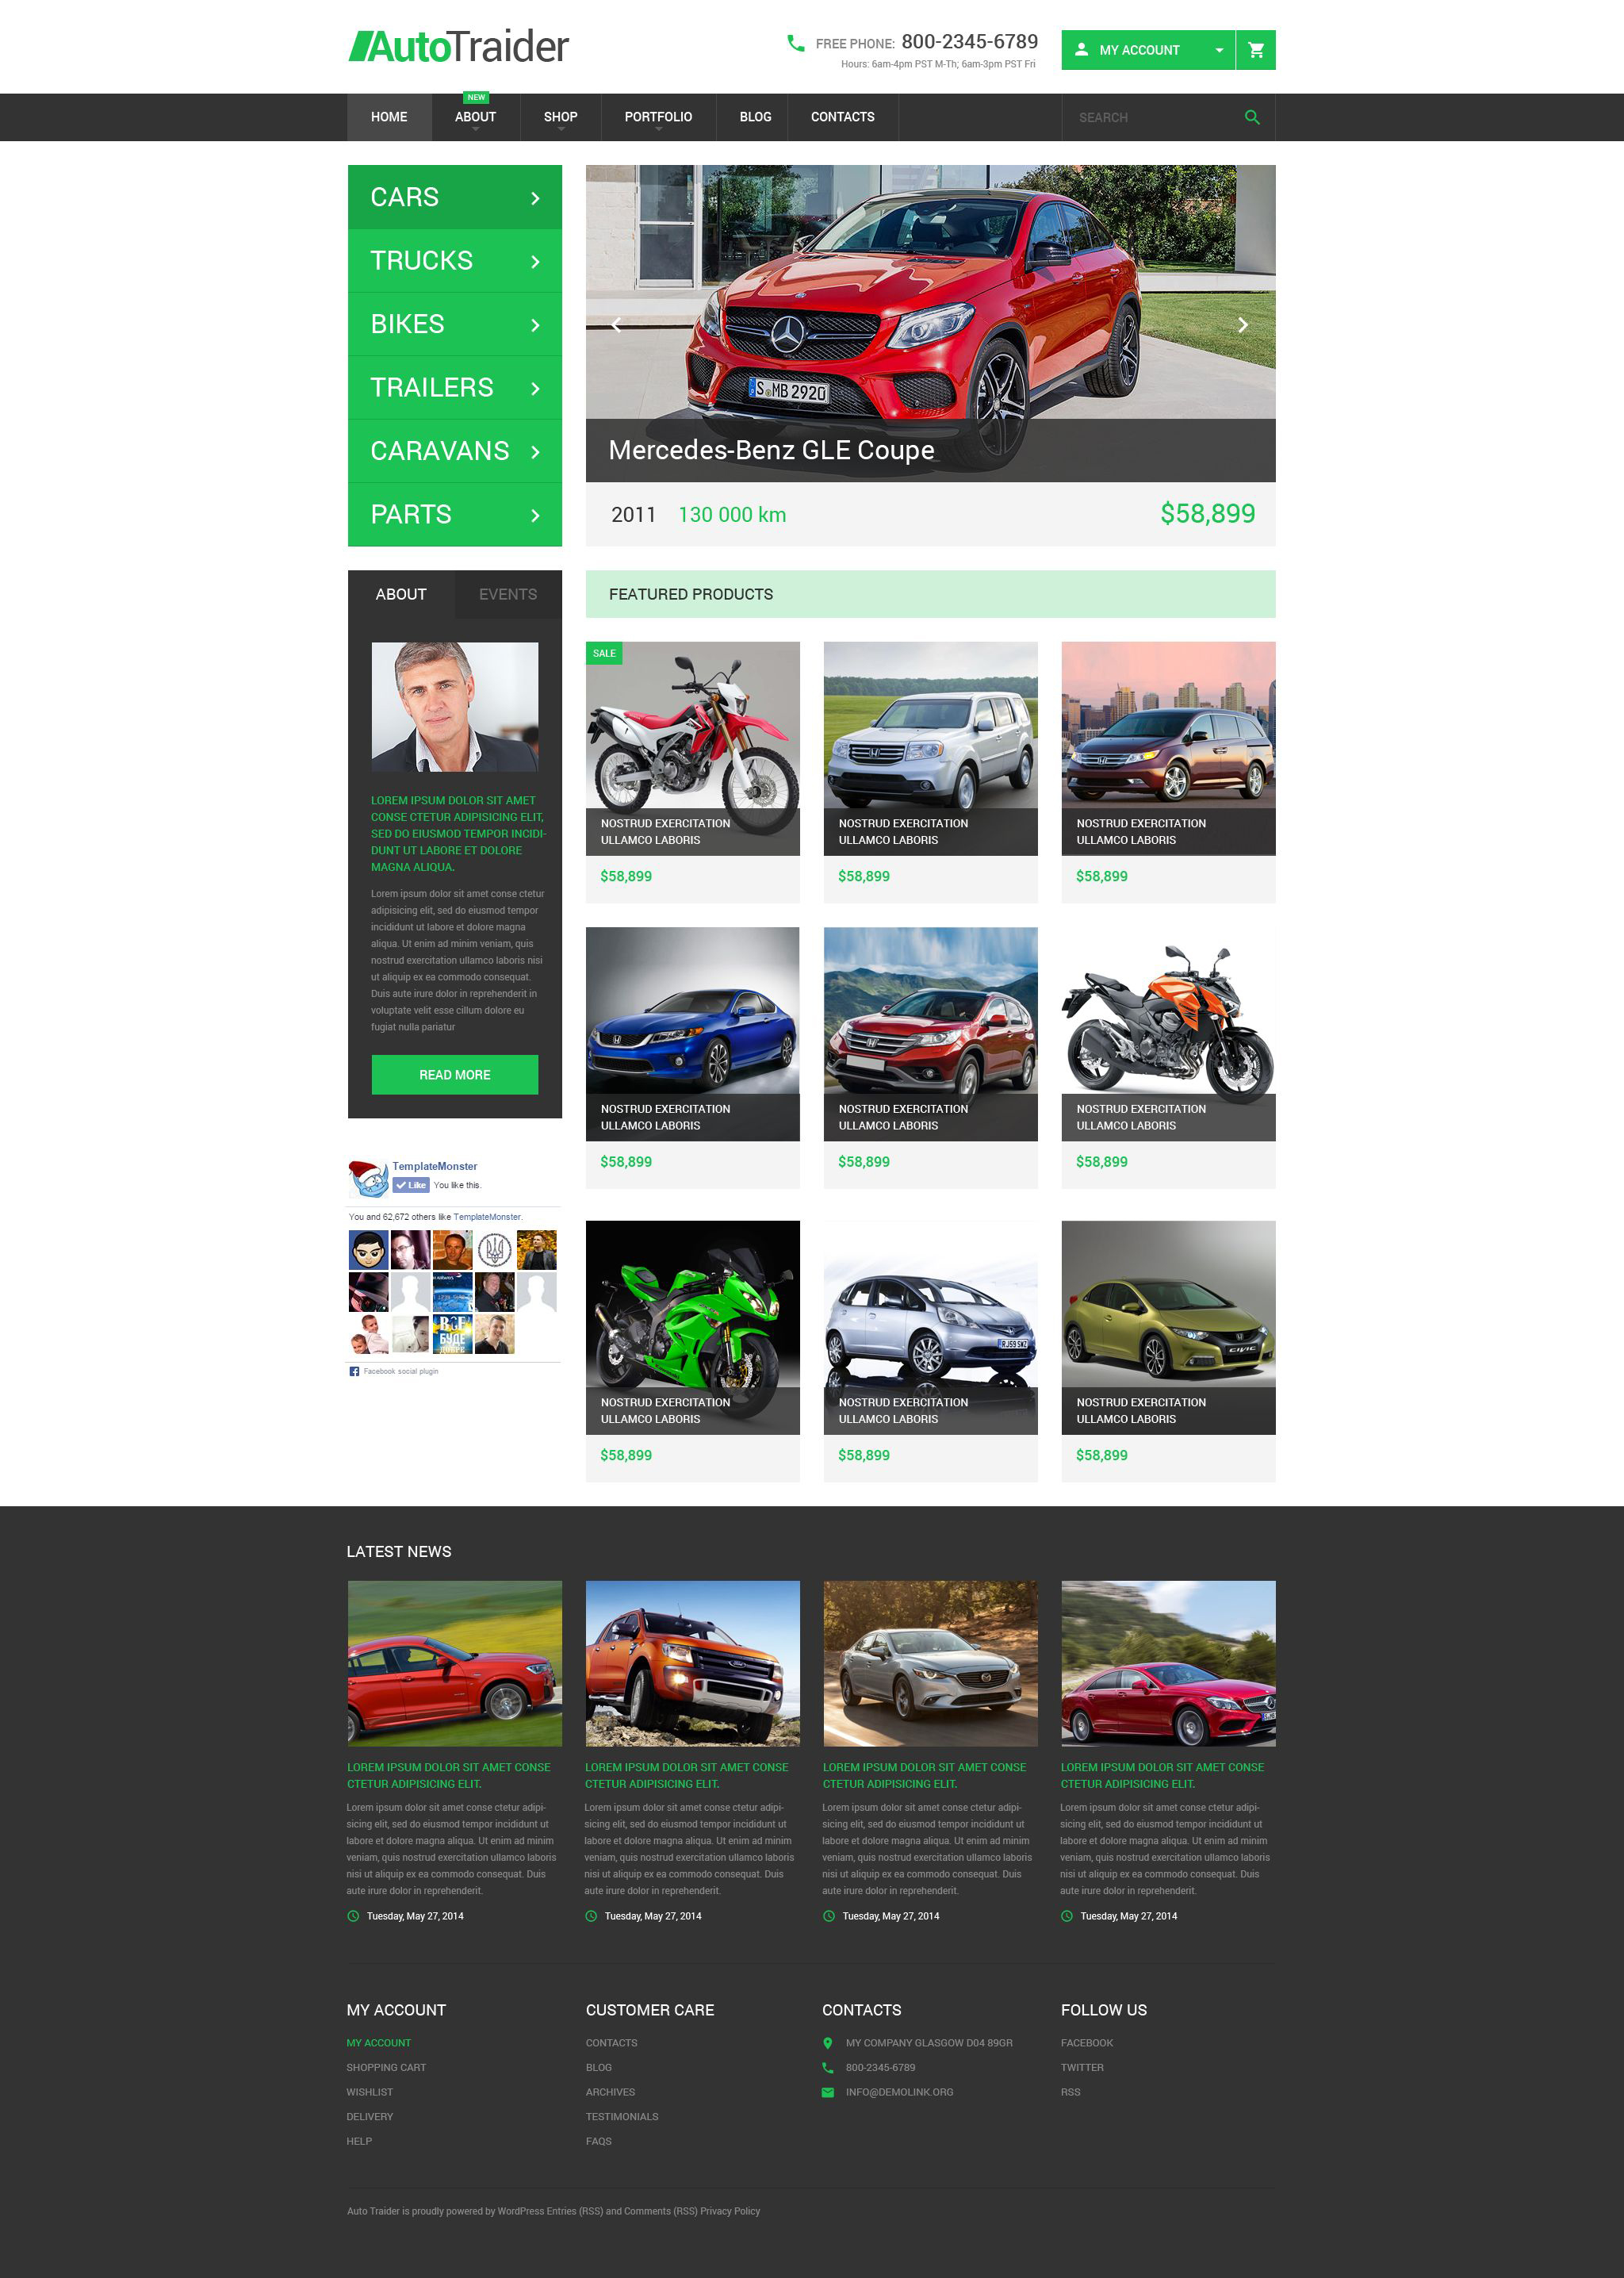 The Auto Traider WooCommerce Design 54047, one of the best WooCommerce themes of its kind (cars, most popular), also known as auto traider WooCommerce template, car WooCommerce template, rental WooCommerce template, auto dealer WooCommerce template, improvement WooCommerce template, new WooCommerce template, used WooCommerce template, certified WooCommerce template, exhibition solution WooCommerce template, market WooCommerce template, research WooCommerce template, vendor WooCommerce template, motor WooCommerce template, price WooCommerce template, Lexus transport WooCommerce template, speed WooCommerce template, jeep WooCommerce template, ford WooCommerce template, Audi Volvo Mercedes driving WooCommerce template, off-road WooCommerce template, racing WooCommerce template, driver WooCommerce template, track WooCommerce template, race WooCommerce template, urban WooCommerce template, freeway WooCommerce template, highway WooCommerce template, road WooCommerce template, vehicle WooCommerce template, Porsche BMW spar and related with auto traider, car, rental, auto dealer, improvement, new, used, certified, exhibition solution, market, research, vendor, motor, price, Lexus transport, speed, jeep, ford, Audi Volvo Mercedes driving, off-road, racing, driver, track, race, urban, freeway, highway, road, vehicle, Porsche BMW spar, etc.